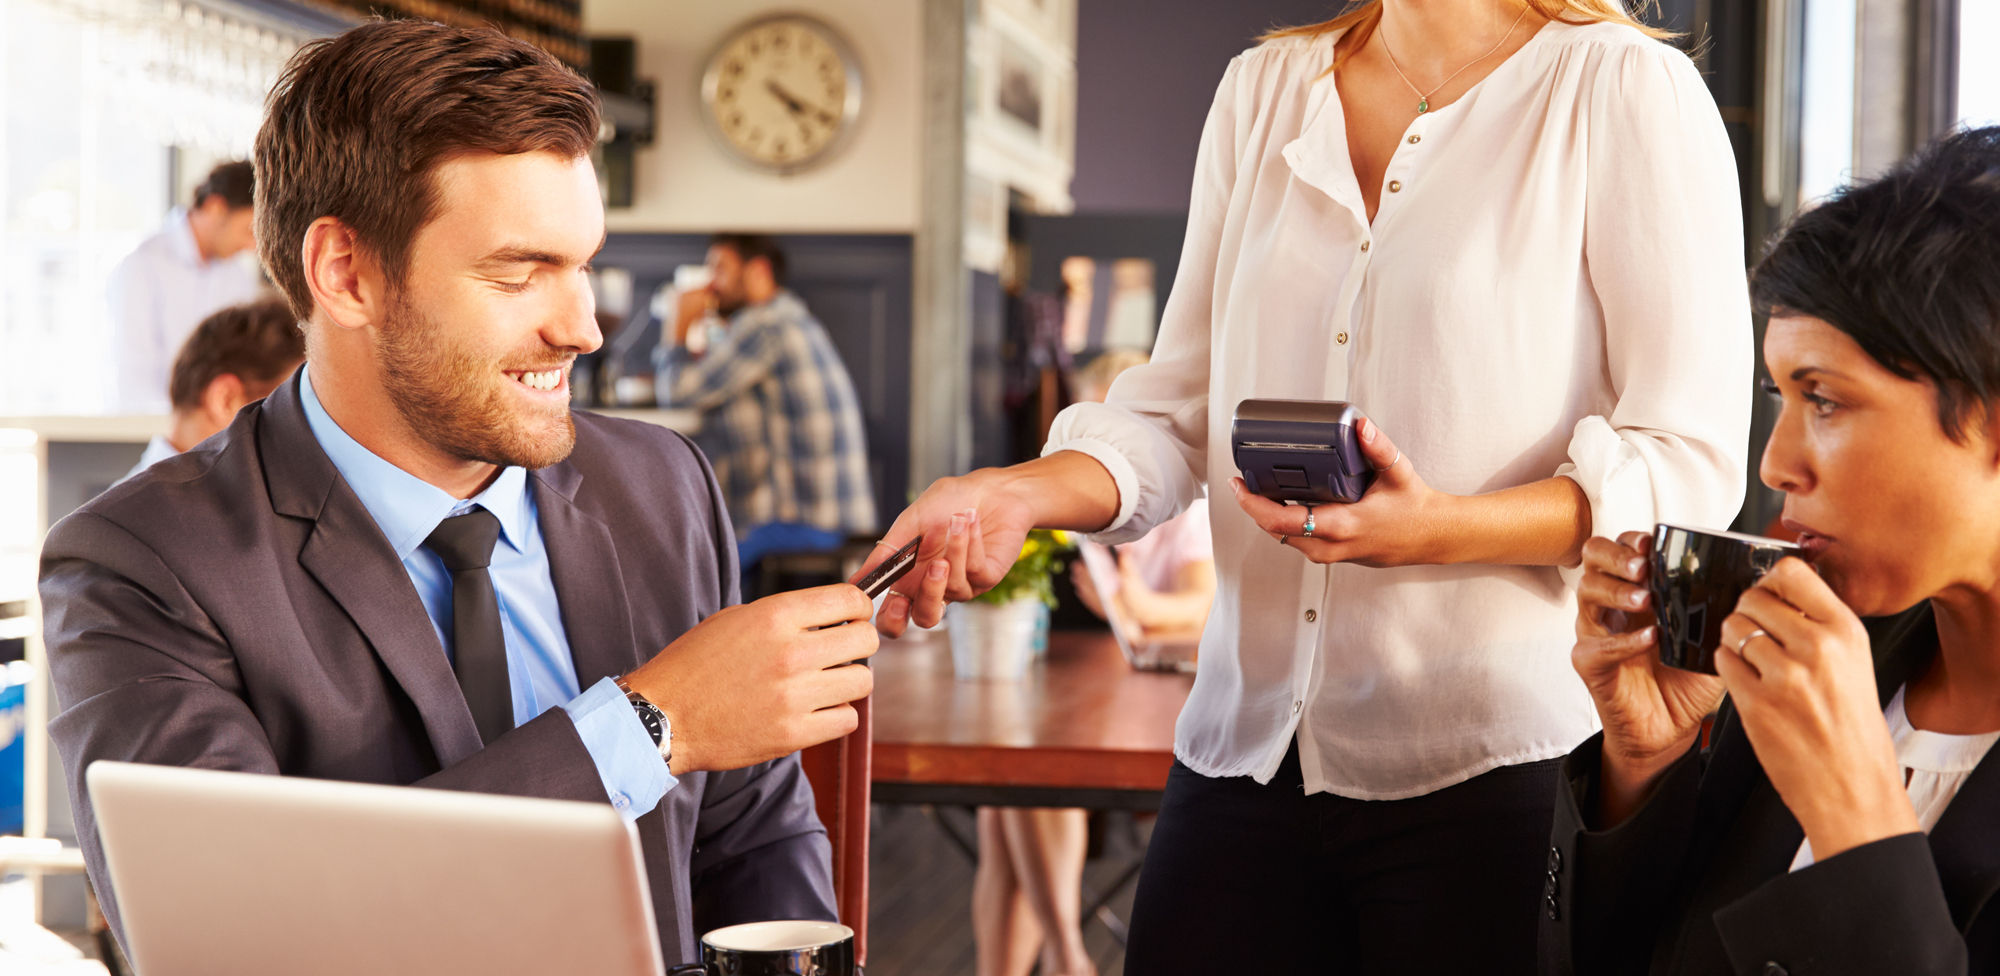 business man and woman in restaurant sitting at table and handing credit card to waitress